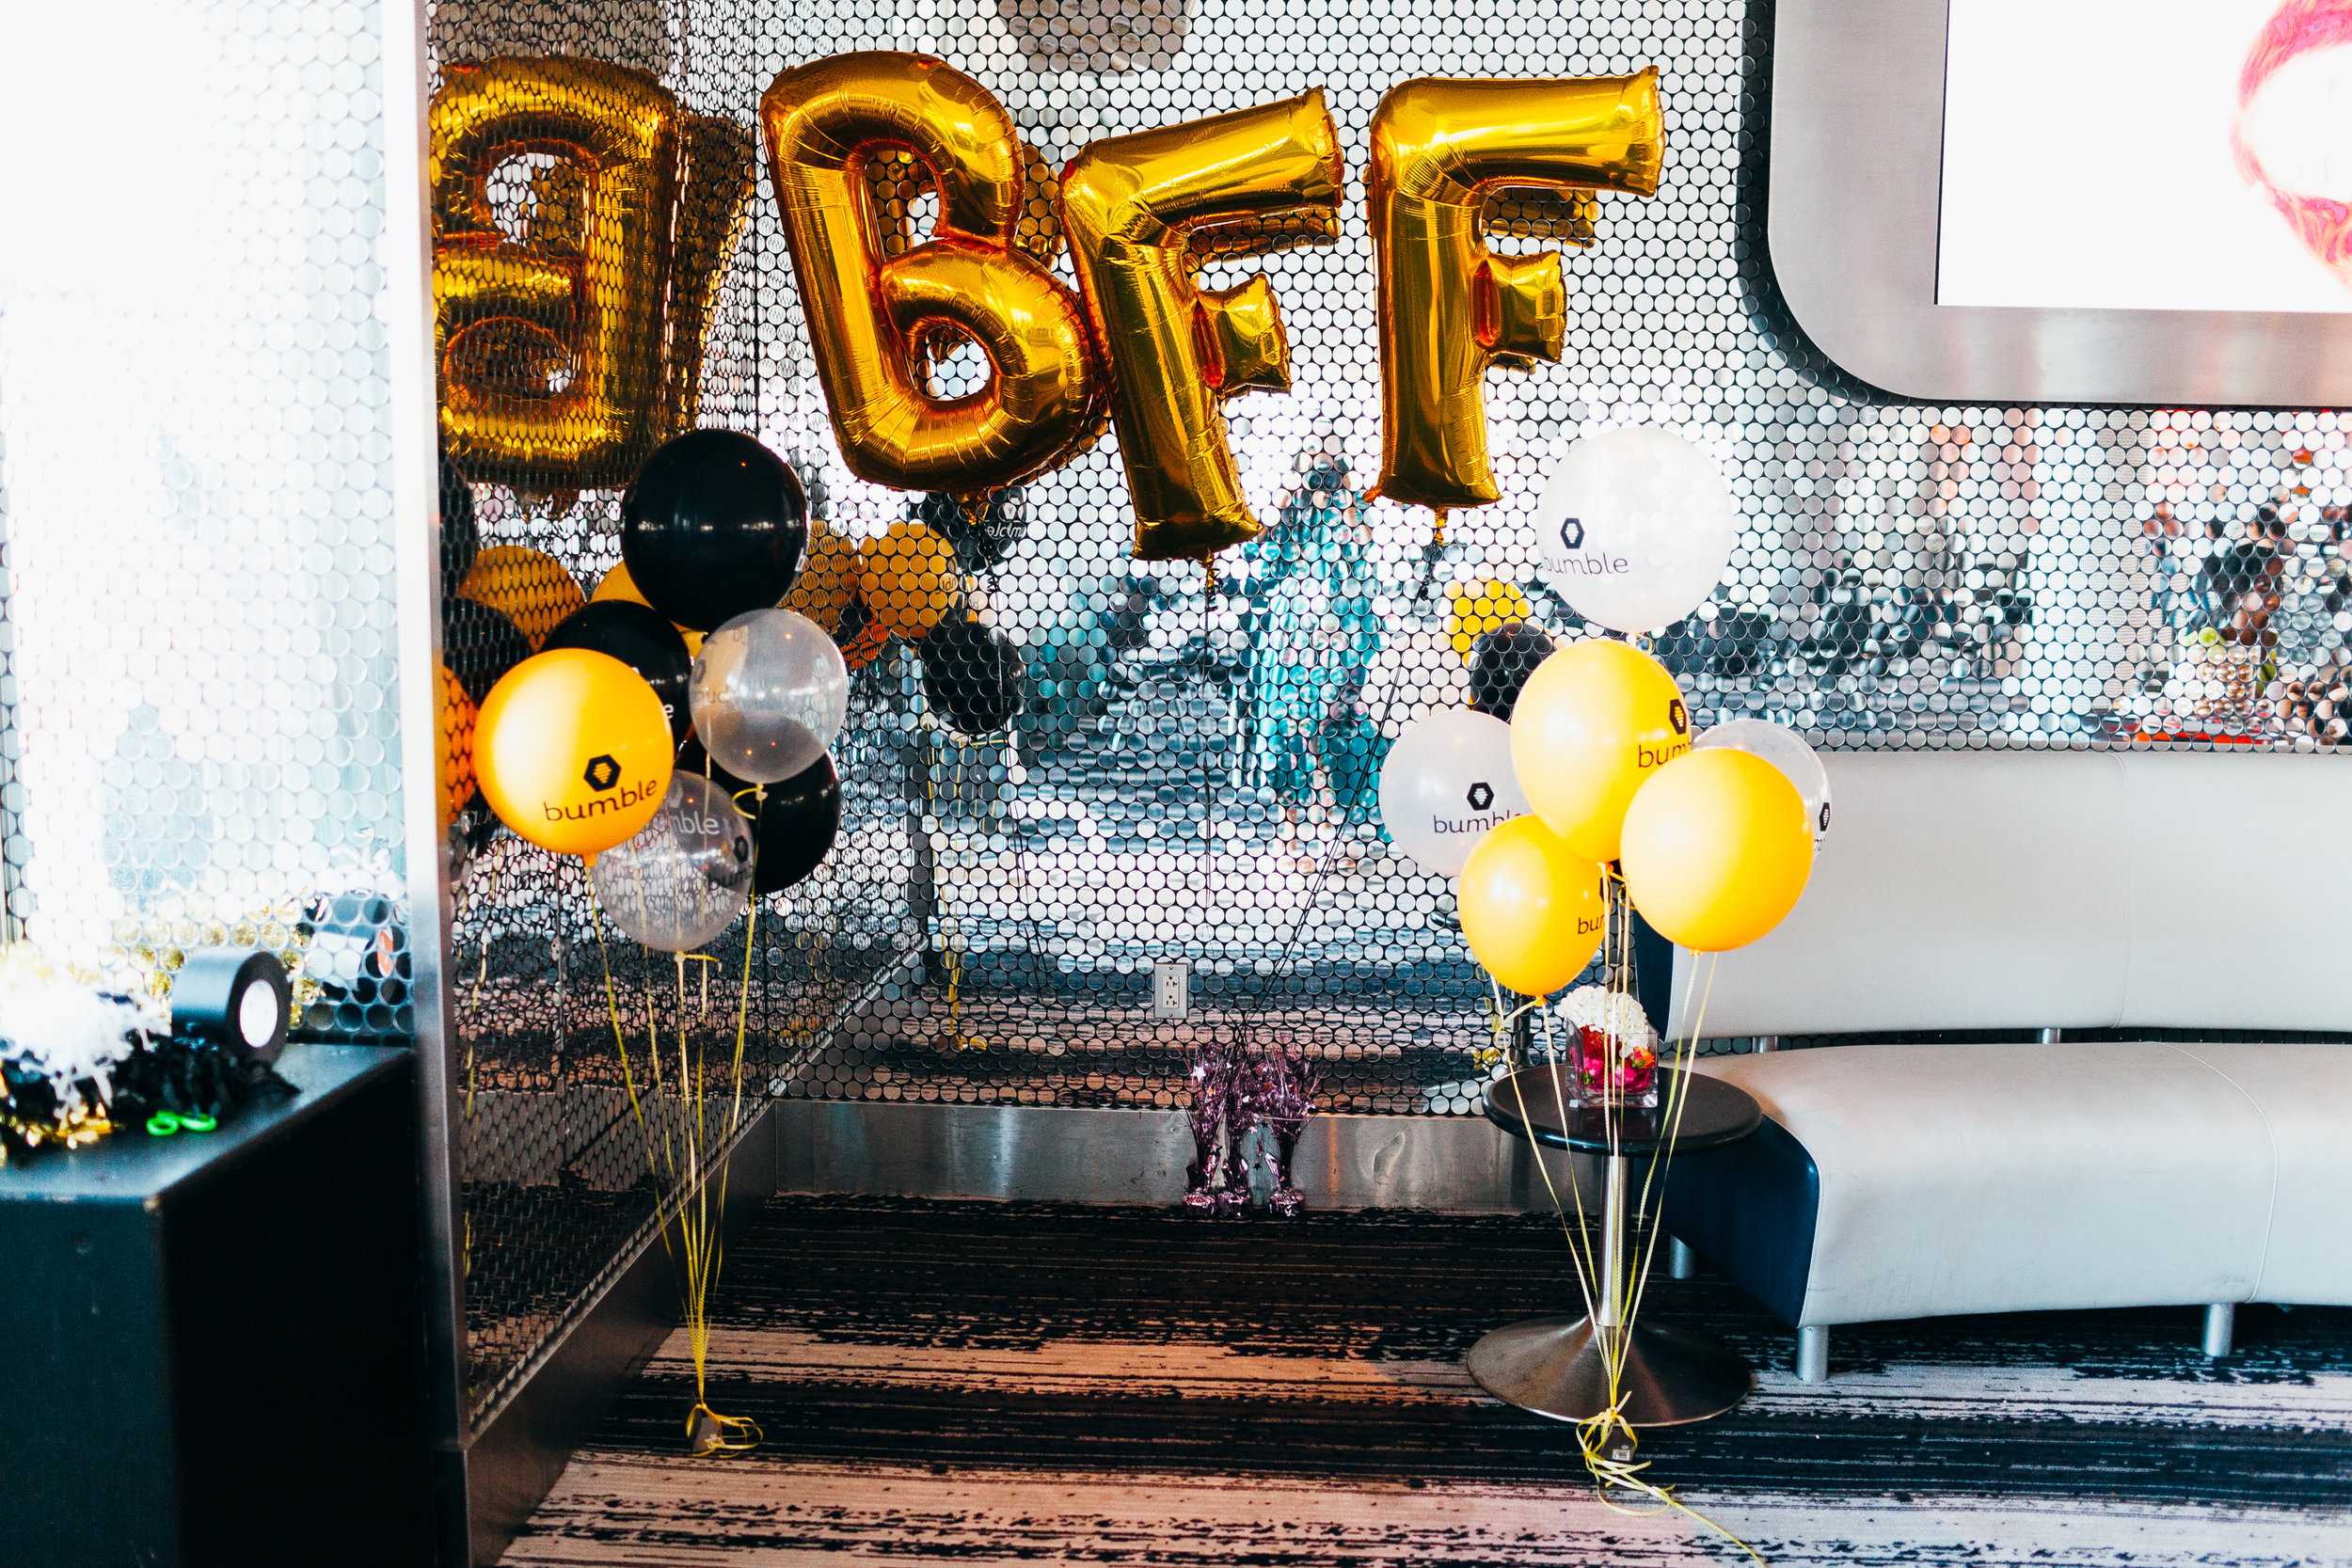 bumble-bff-dallas-launch-event-6446.jpg